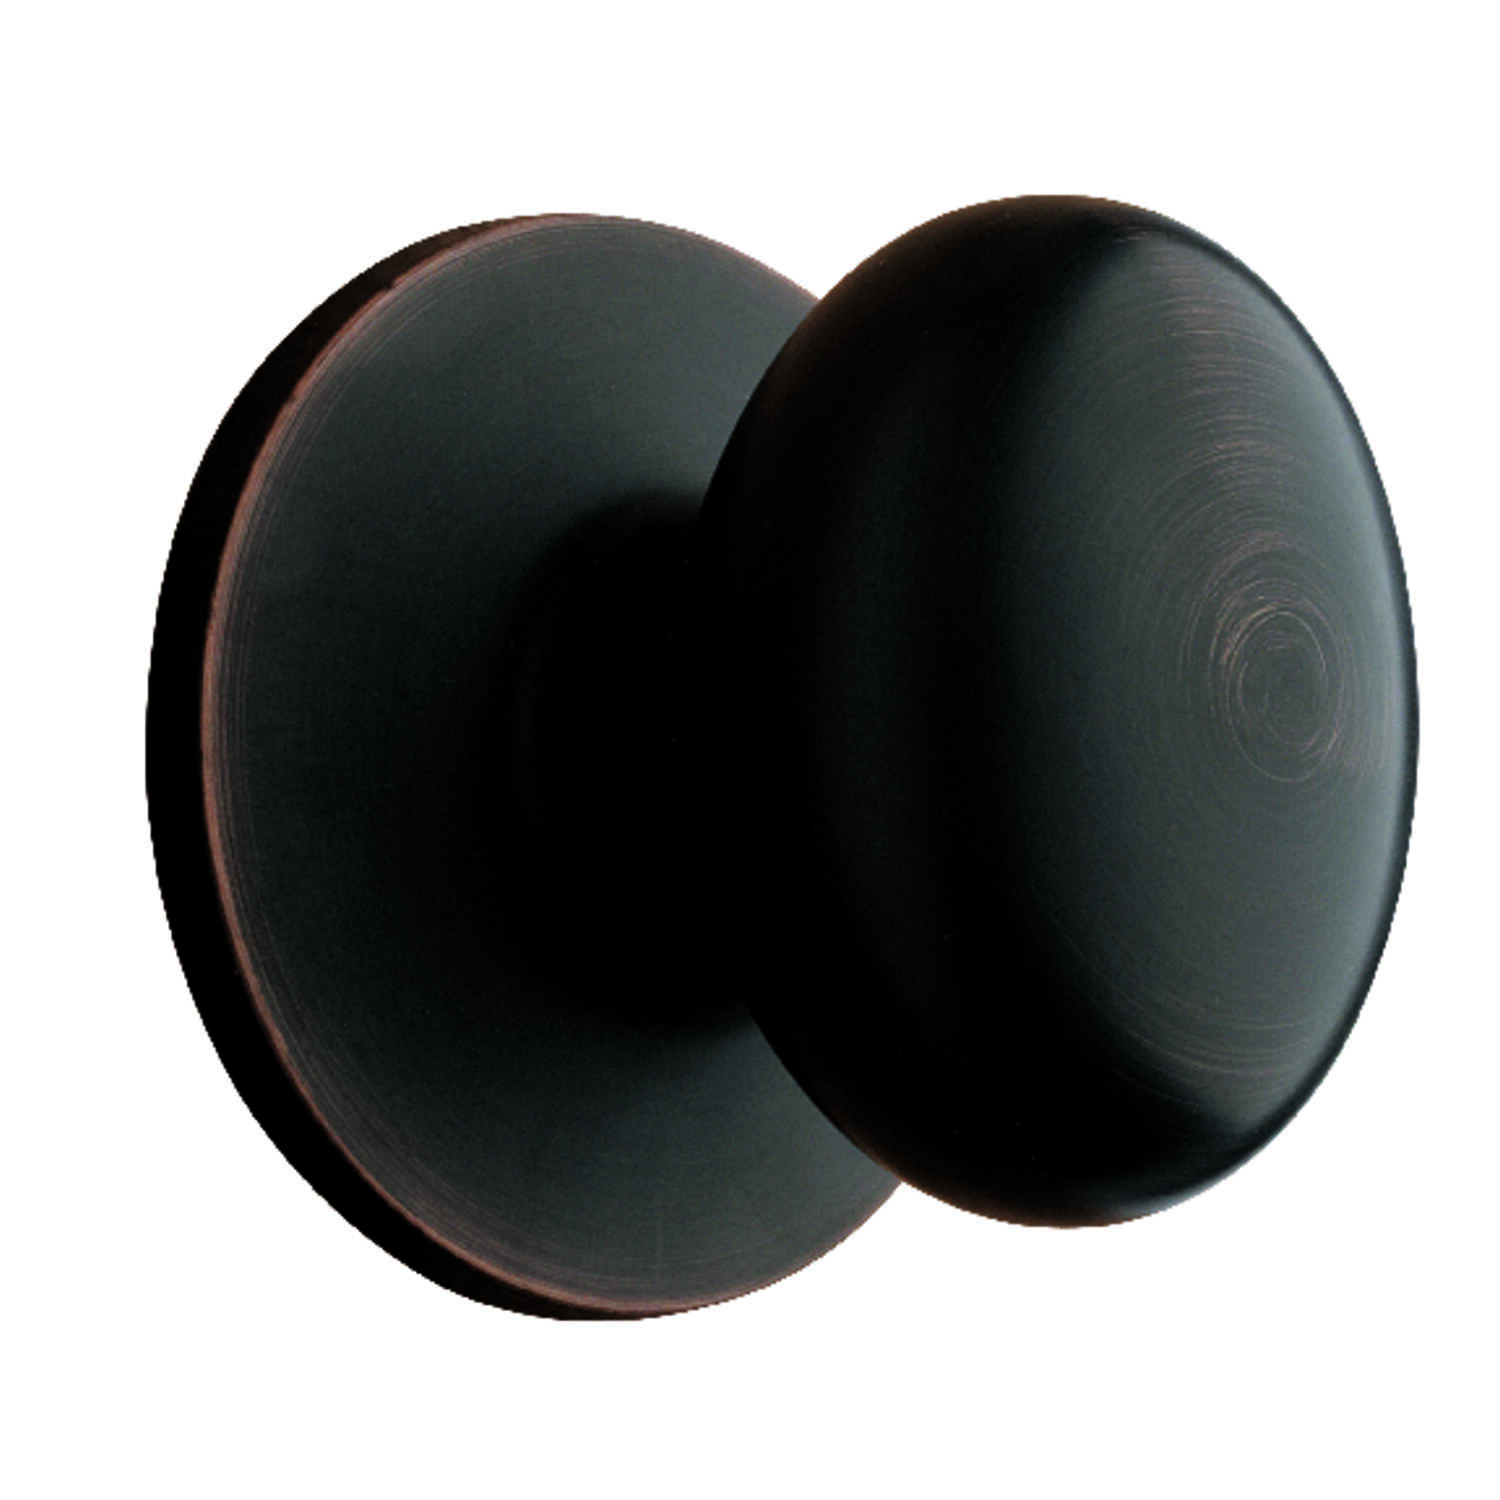 Ace  Egg  Oil Rubbed Bronze  Steel  Dummy Knob  3 Grade Right or Left Handed